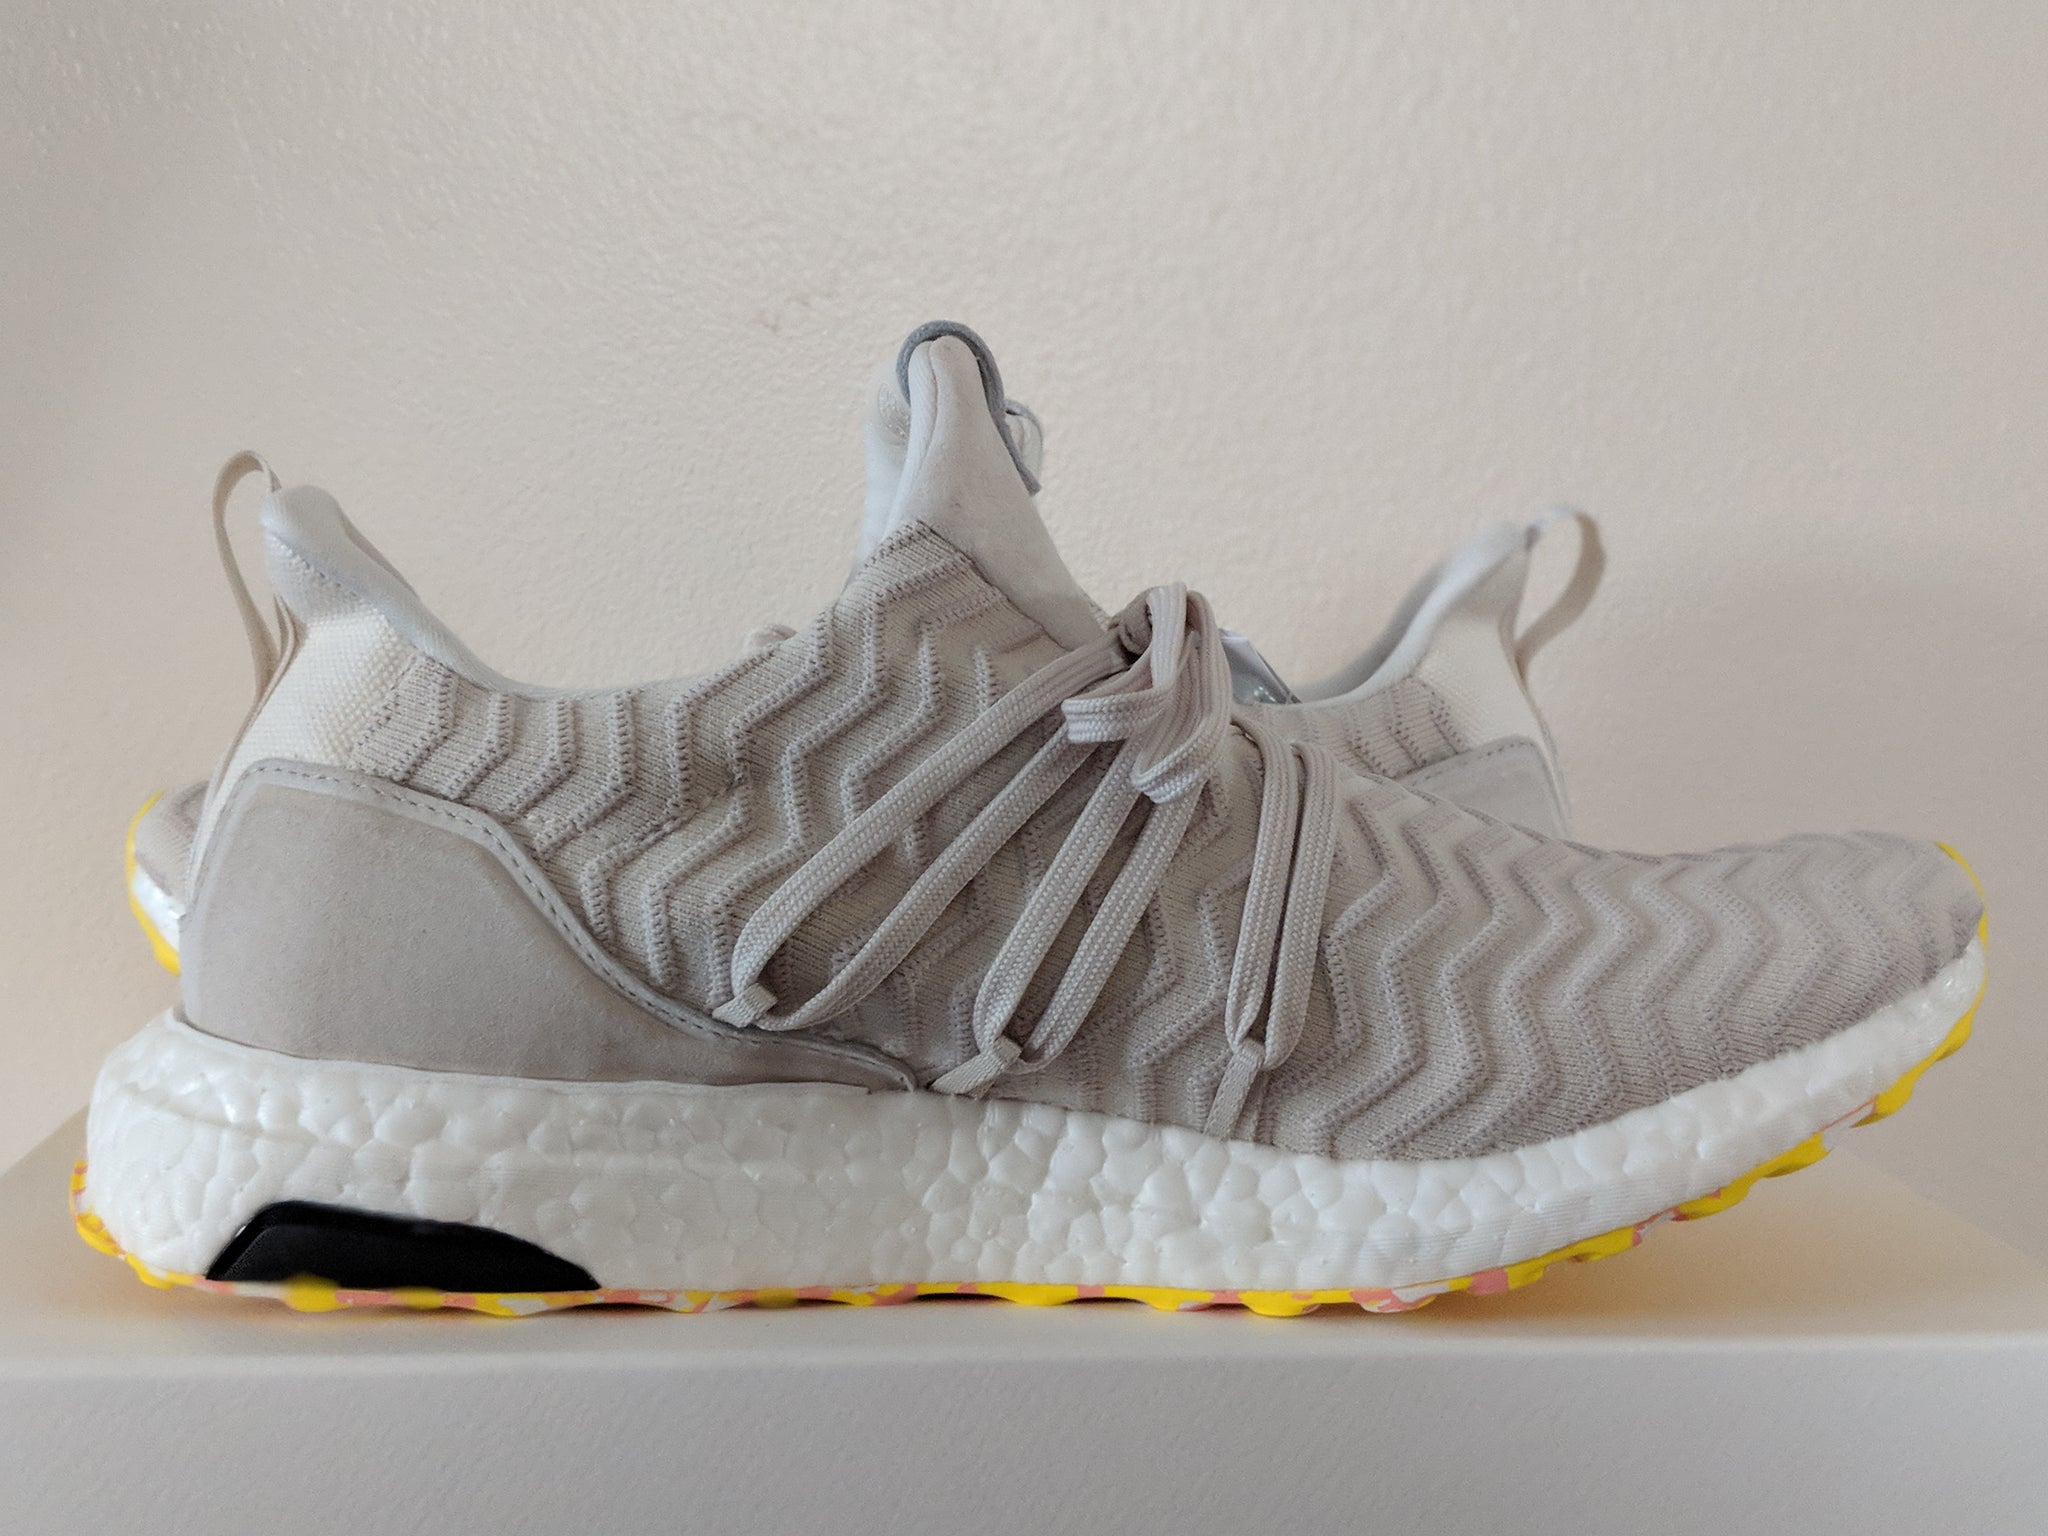 promo code 82bbd 16b34 A Kind of Guise x adidas Ultra Boost – For the Toe